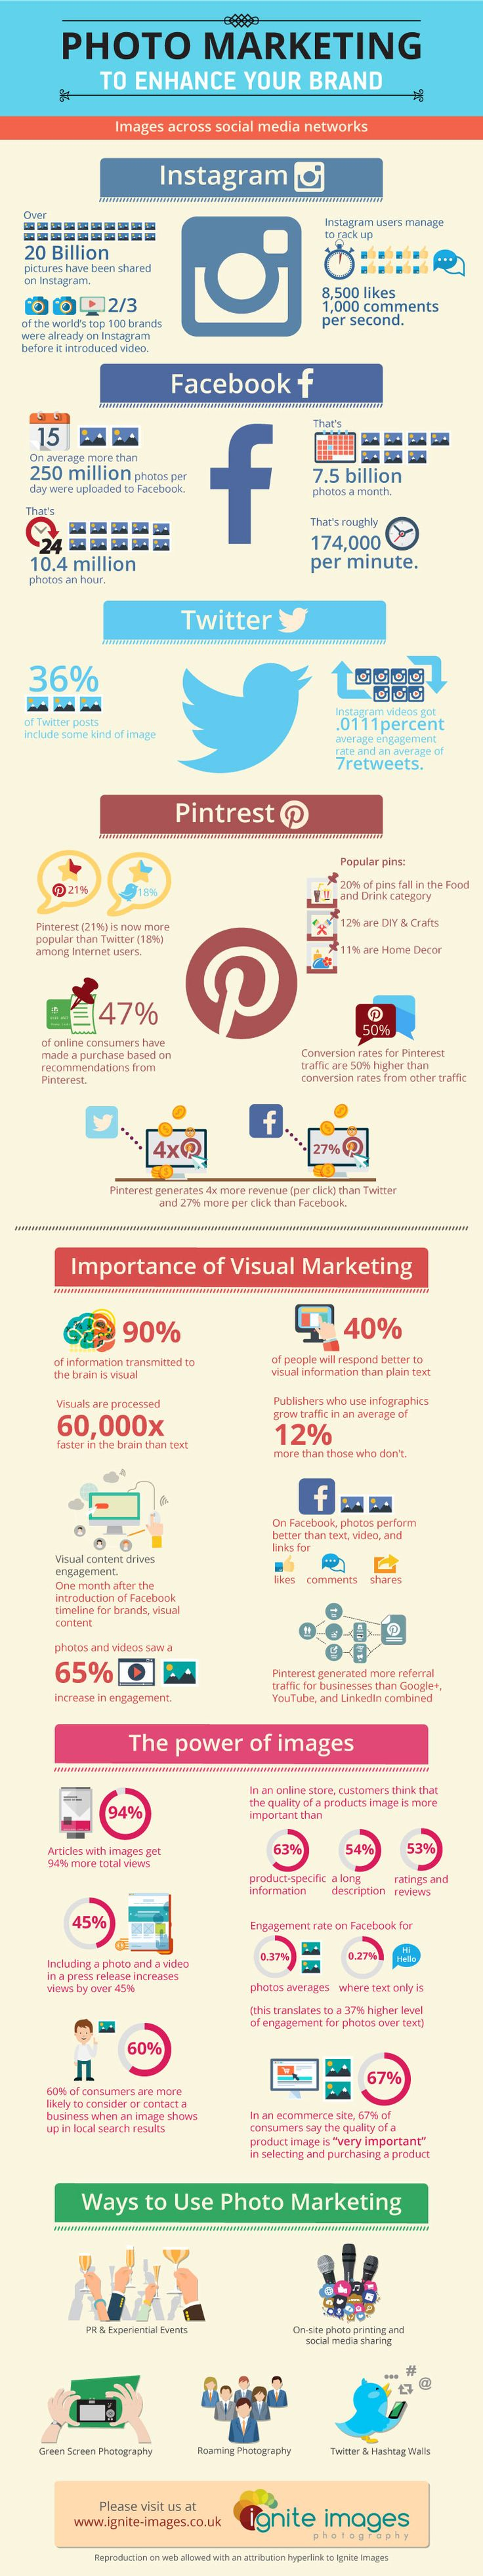 Visual Marketing: How Do People React To It?   Apartment Number 2 Tony Yeung Toronto Social Media Marketing Specialist